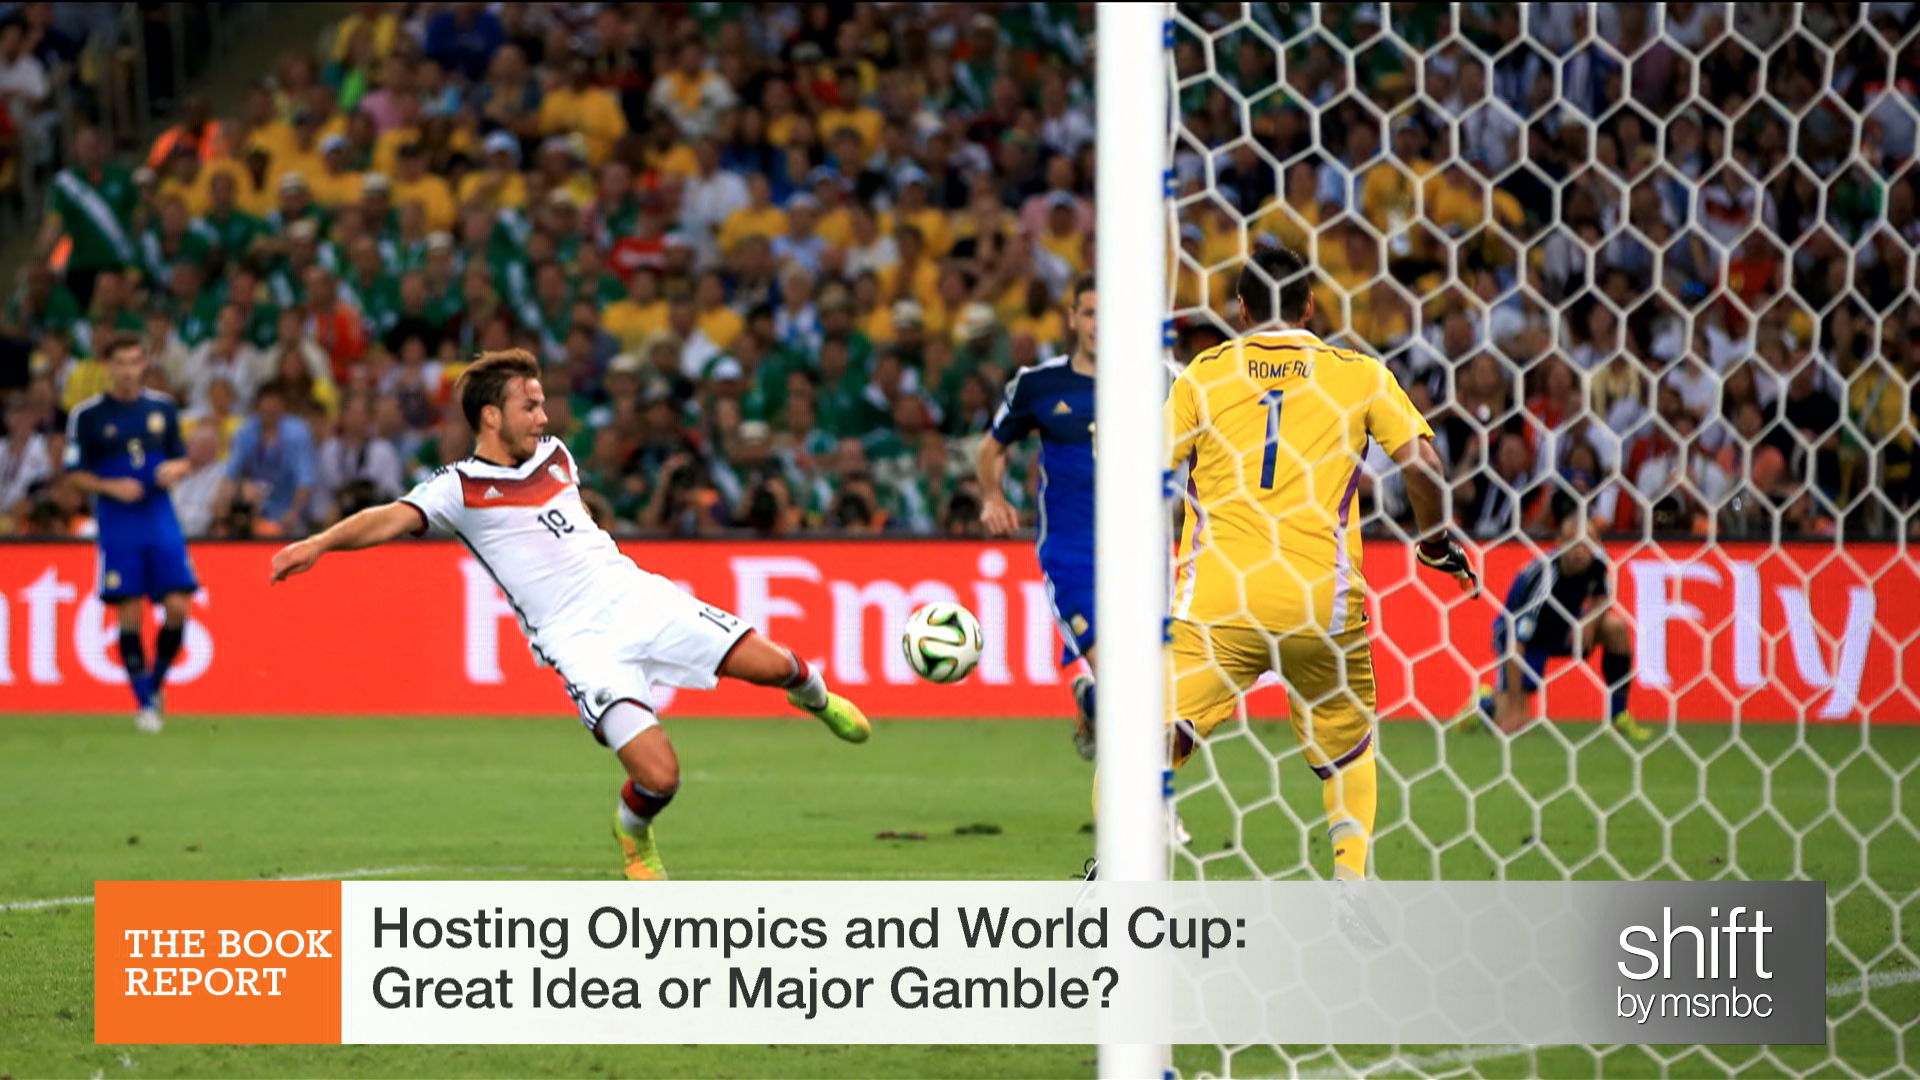 Is hosting major sporting events a gamble?